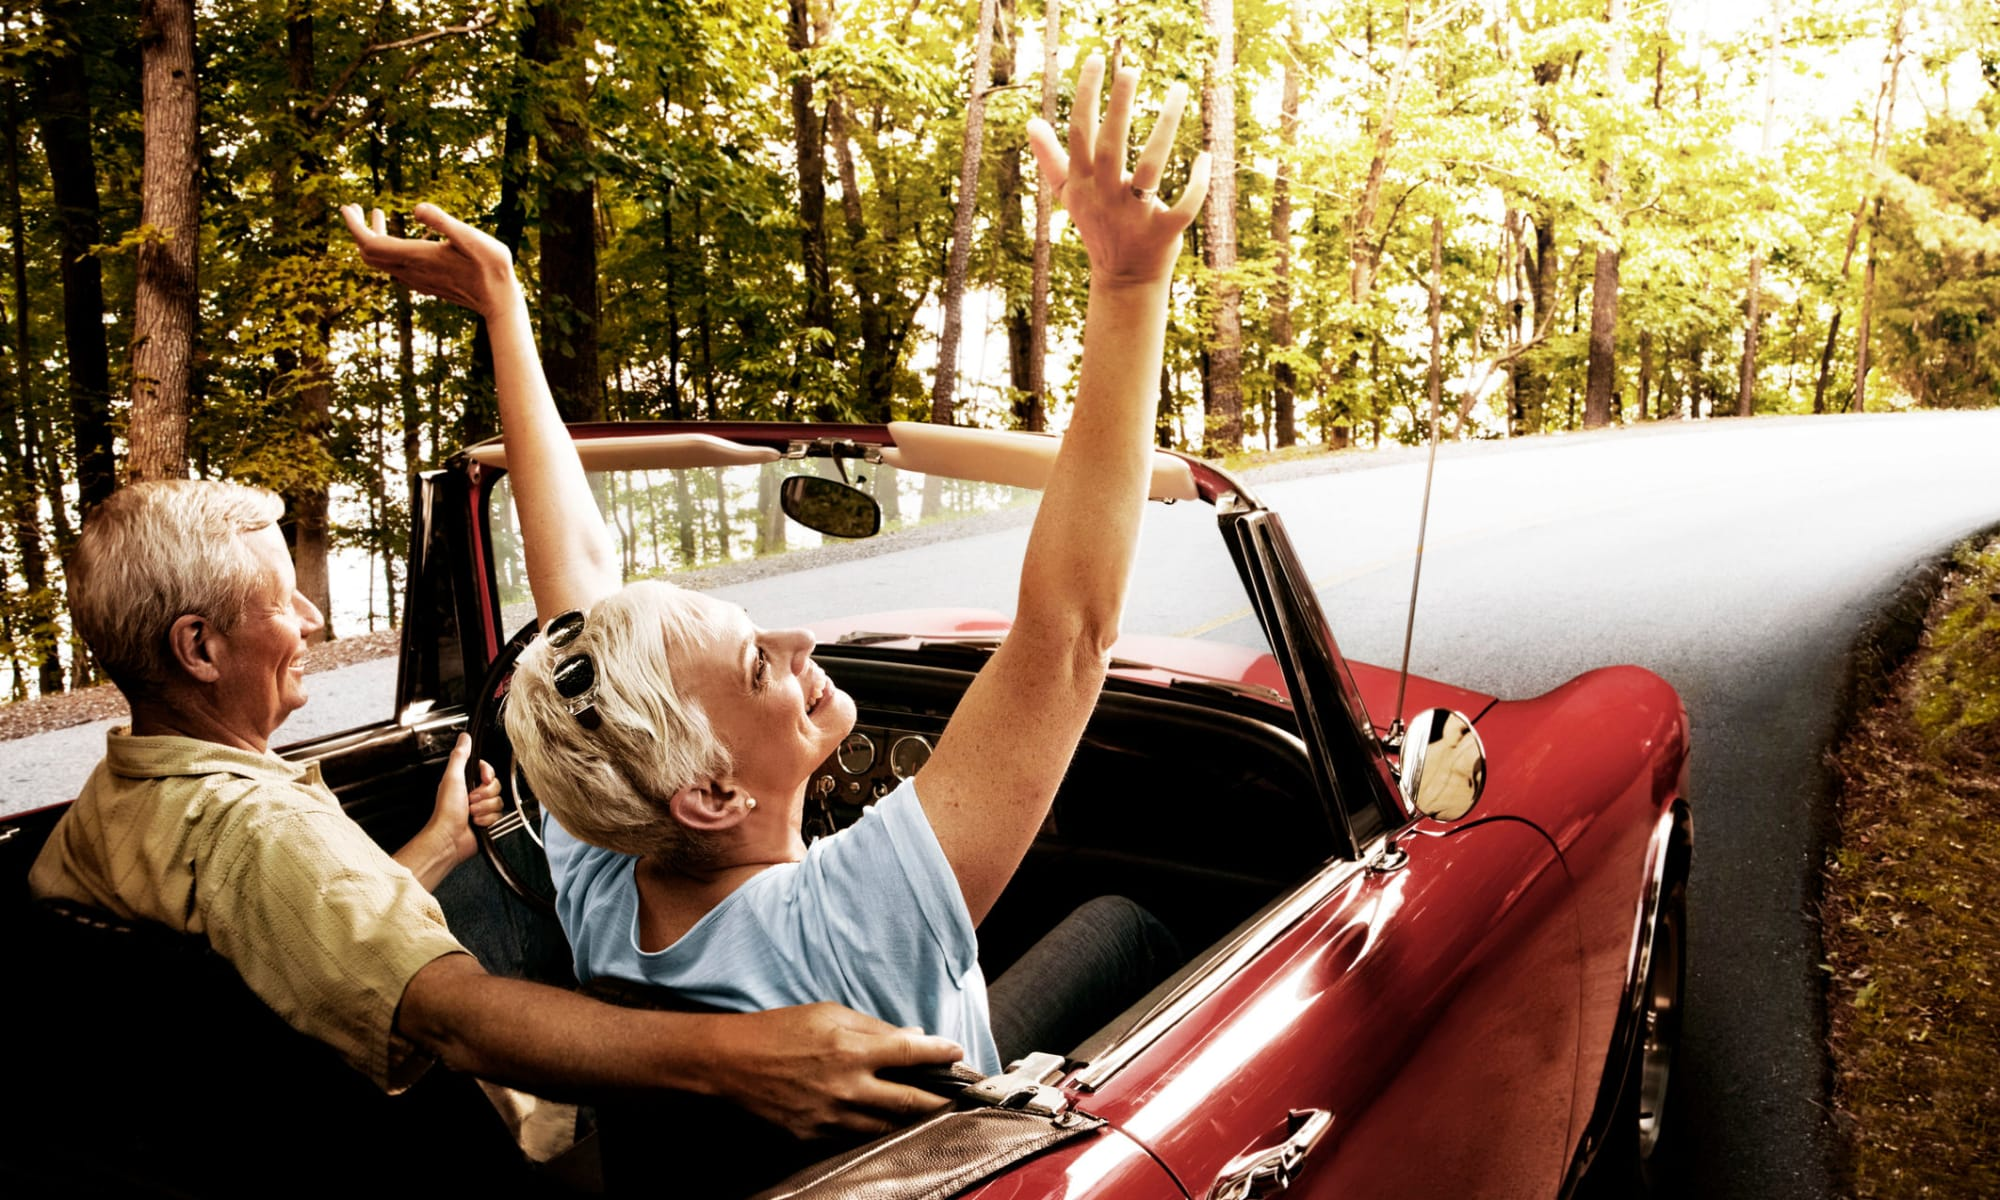 background image of seniors driving in a convertible car